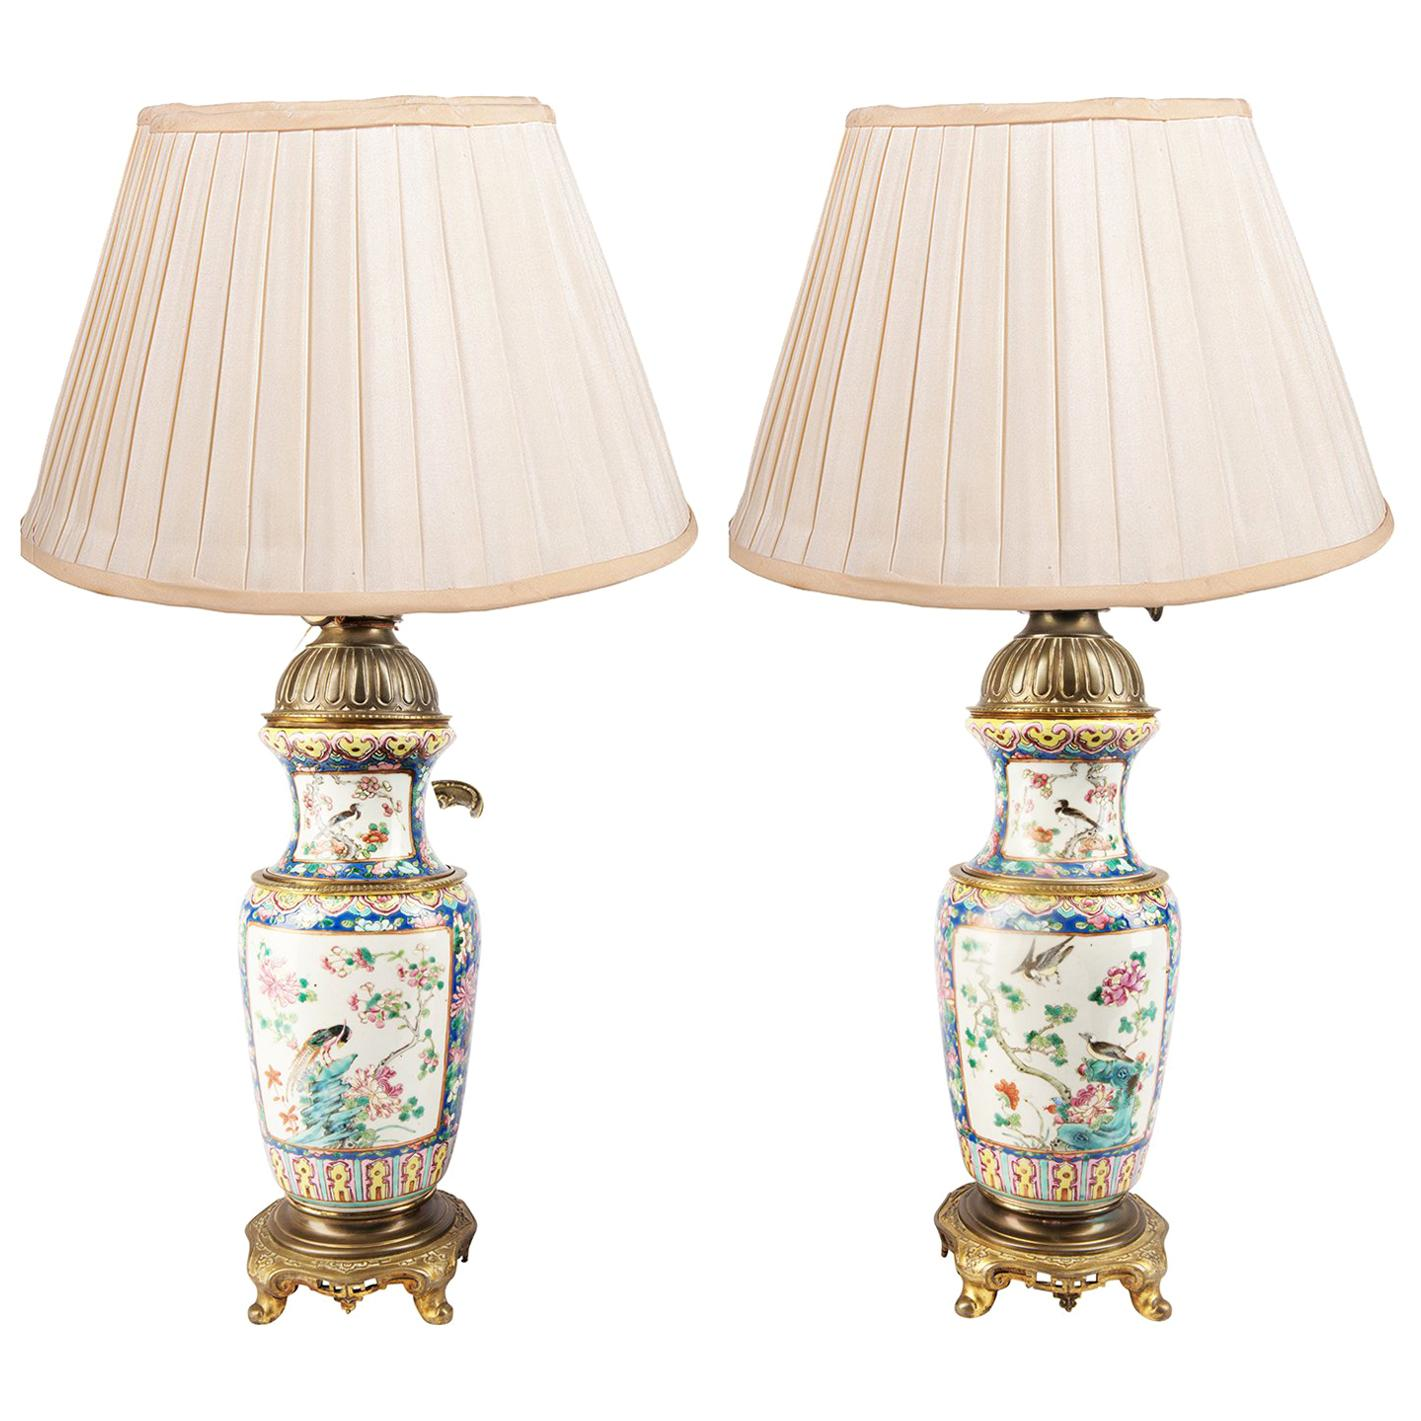 Pair of 19th Century Chinese Famille Rose Vases or Lamps